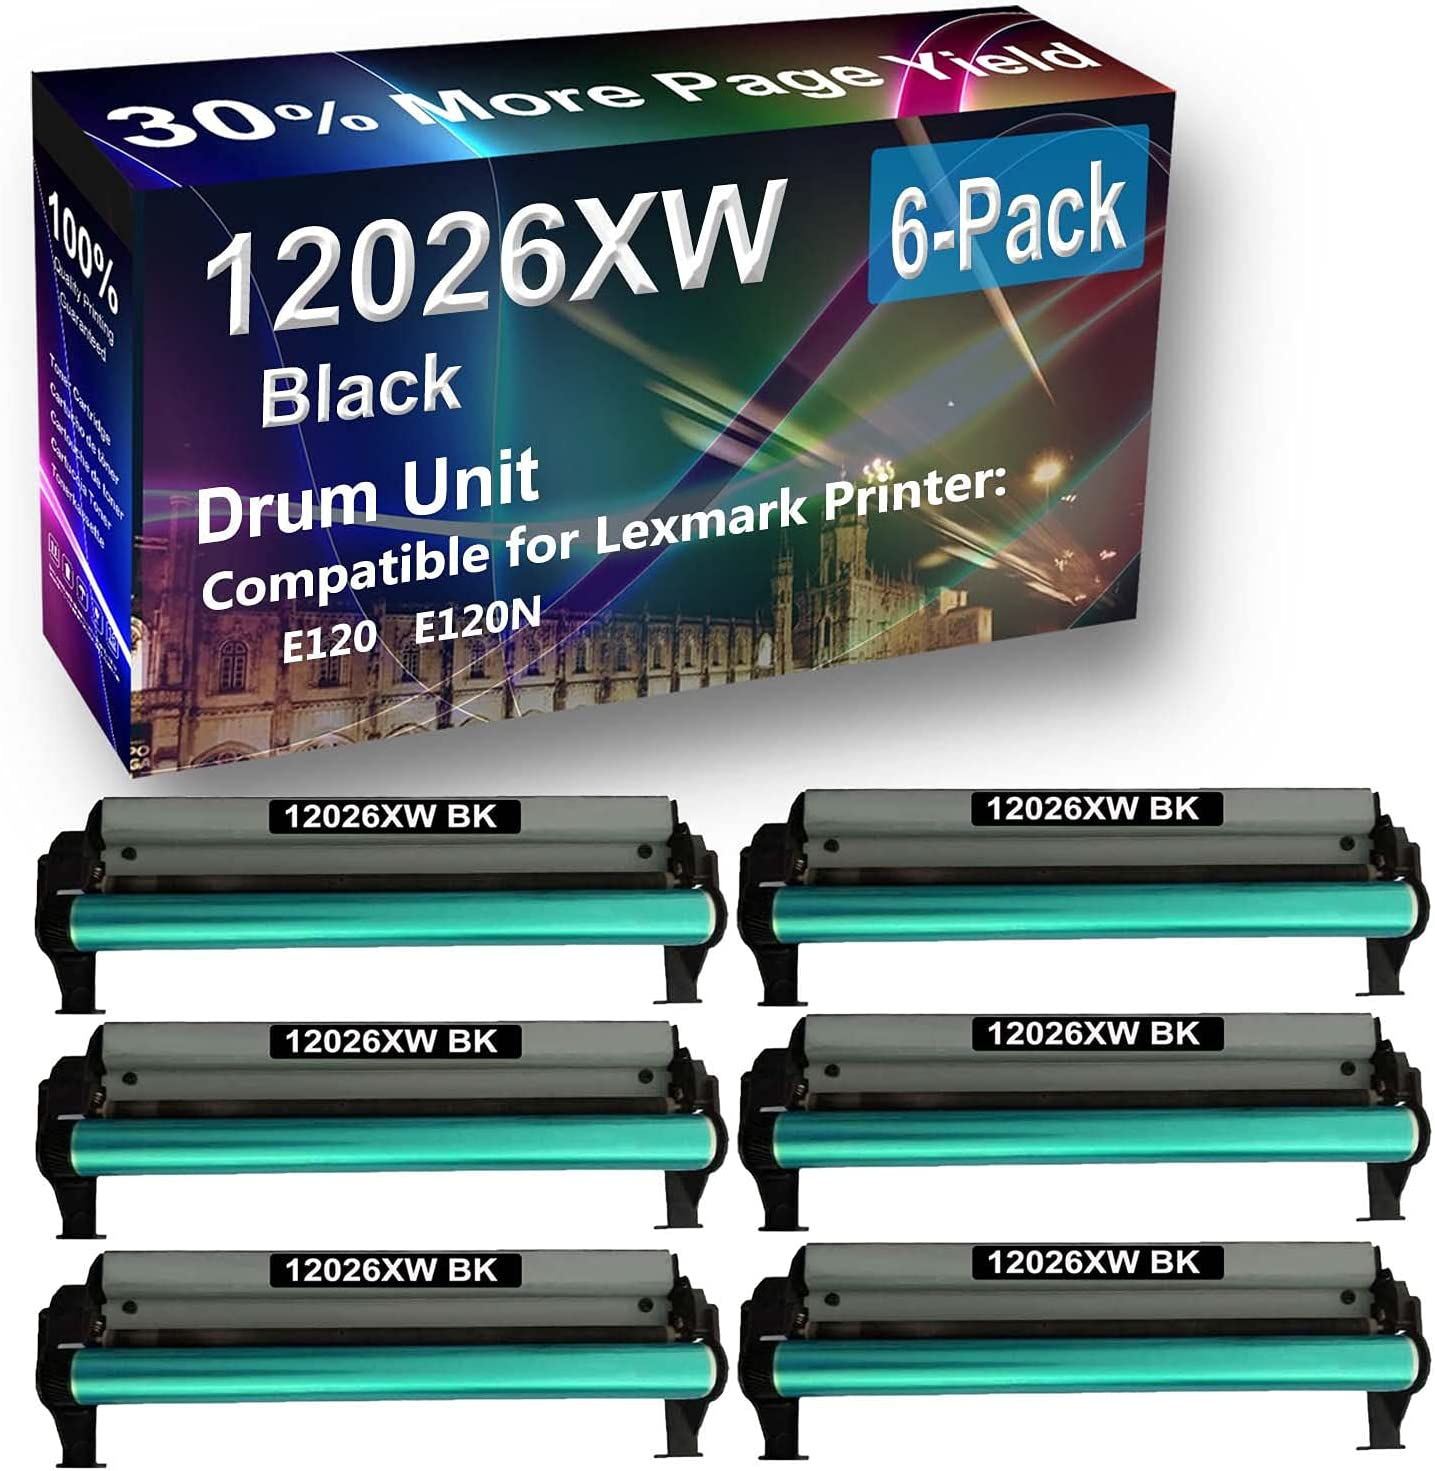 6-Pack (Black) Compatible E120 E120N Printer Drum Unit Replacement for Lexmark 12026XW Drum Kit